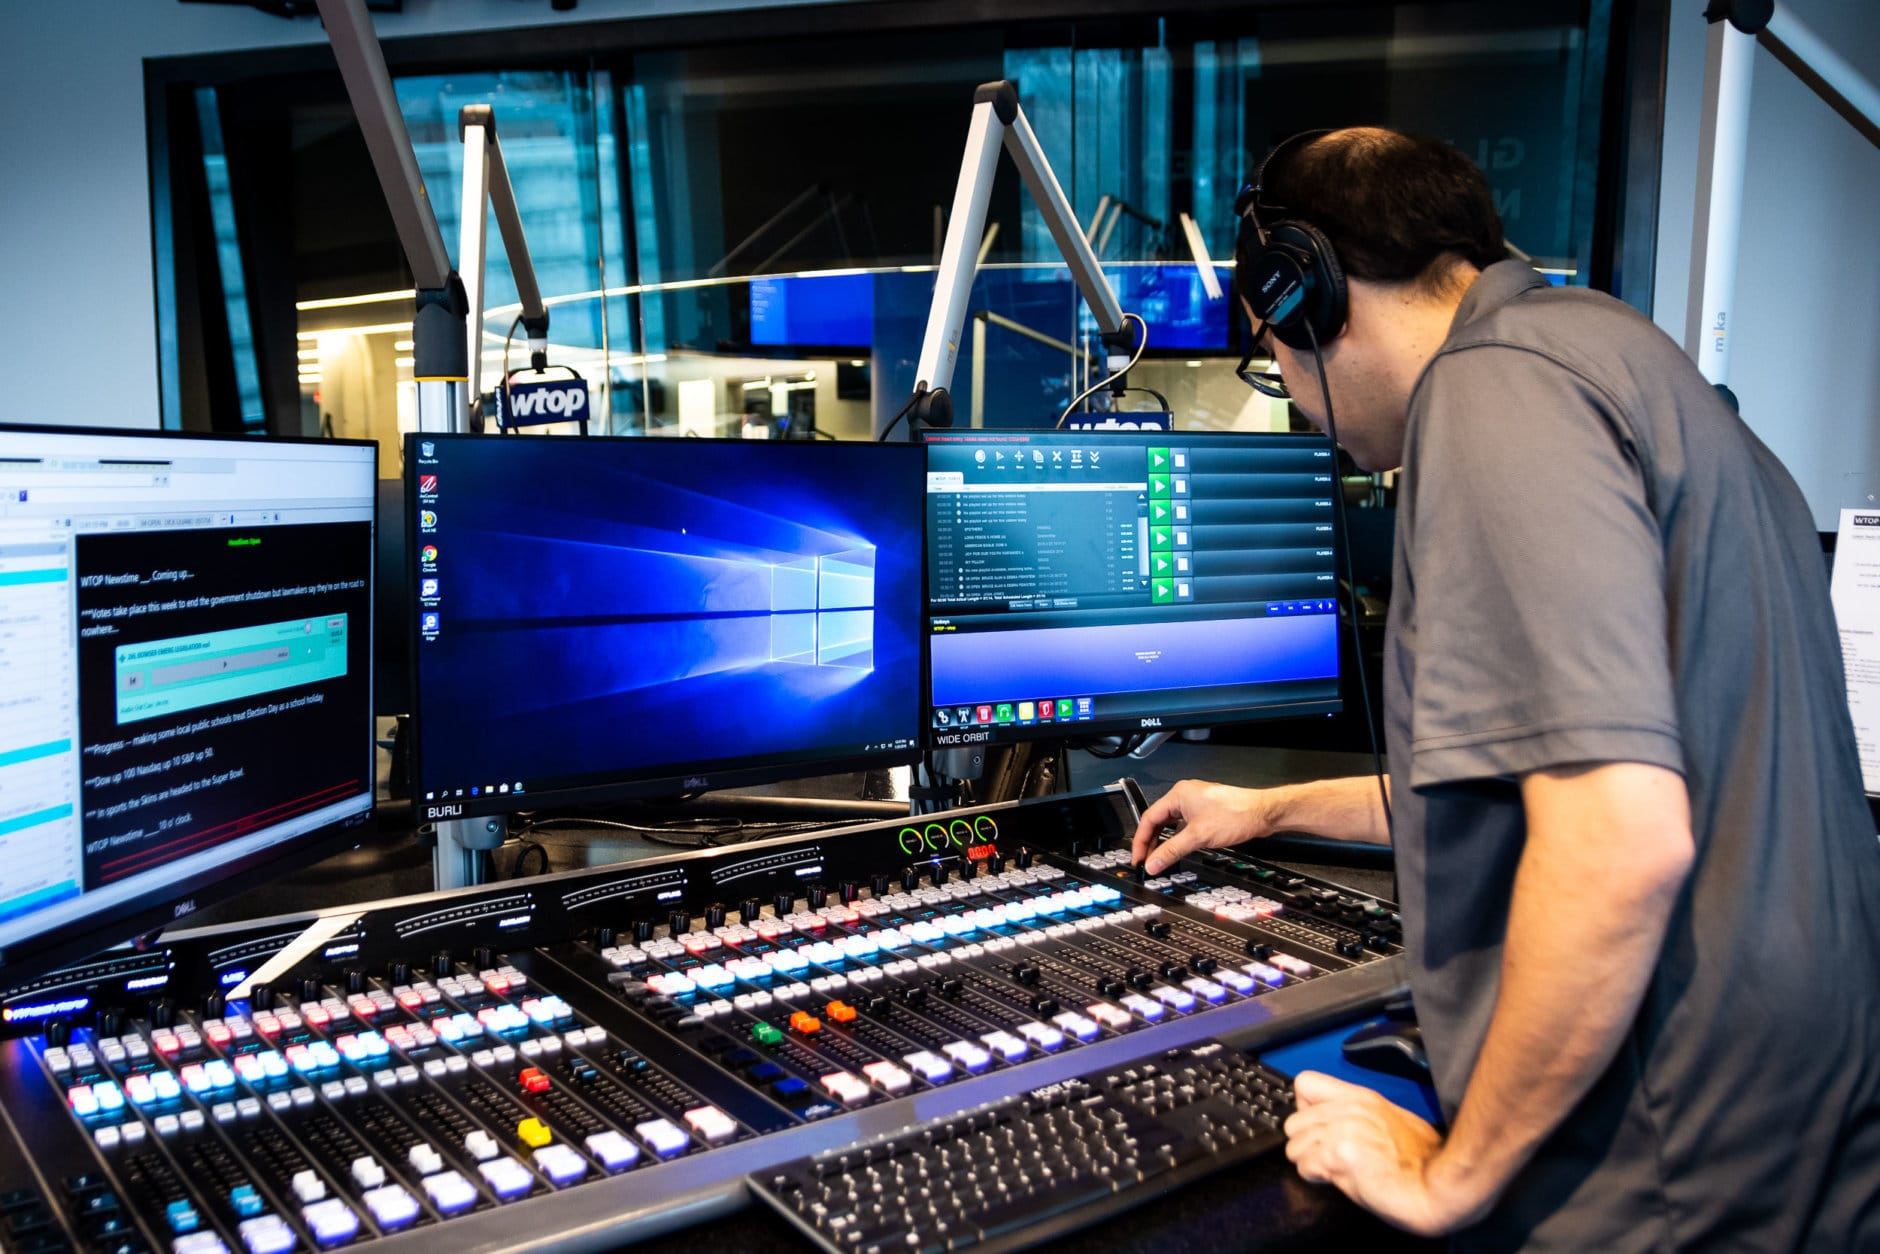 WTOP's Mike Murillo programs the Glass-Enclosed Nerve Center's control console before anchors arrive for a practice run on Jan. 29. The starship-like circular bridge which seats the station's editors can be seen through the glass in the background. Though the studio is sound-proofed, editors can talk with the editors through an intercom system. (WTOP/Alejandro Alvarez)